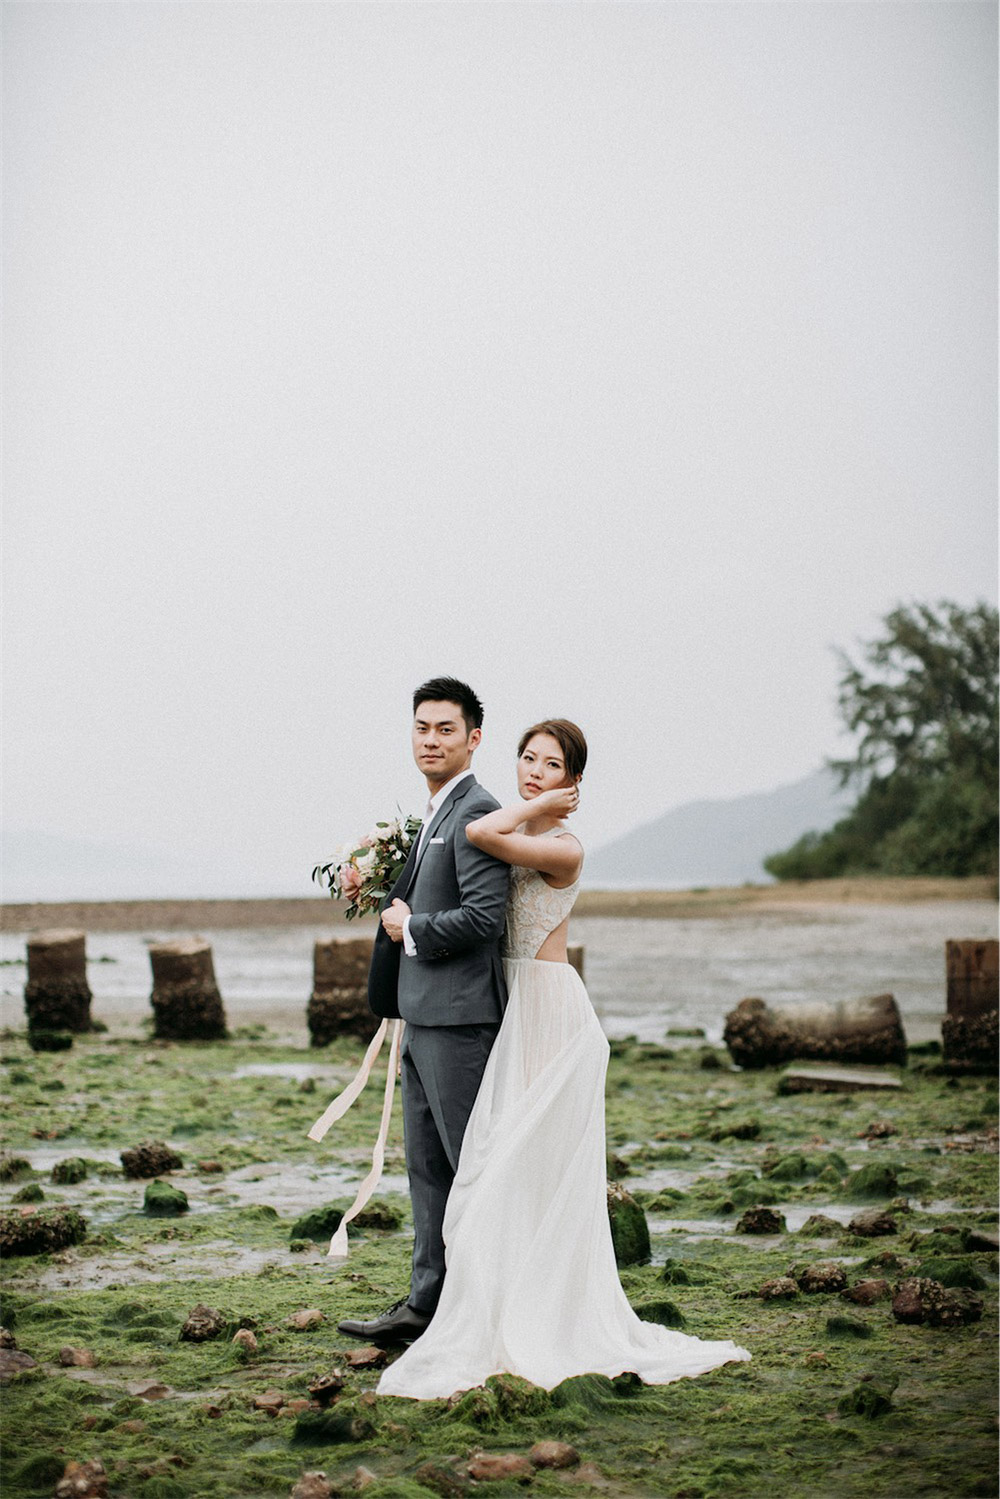 Photo by Sophia Kwan Weddings. www.theweddingnotebook.com